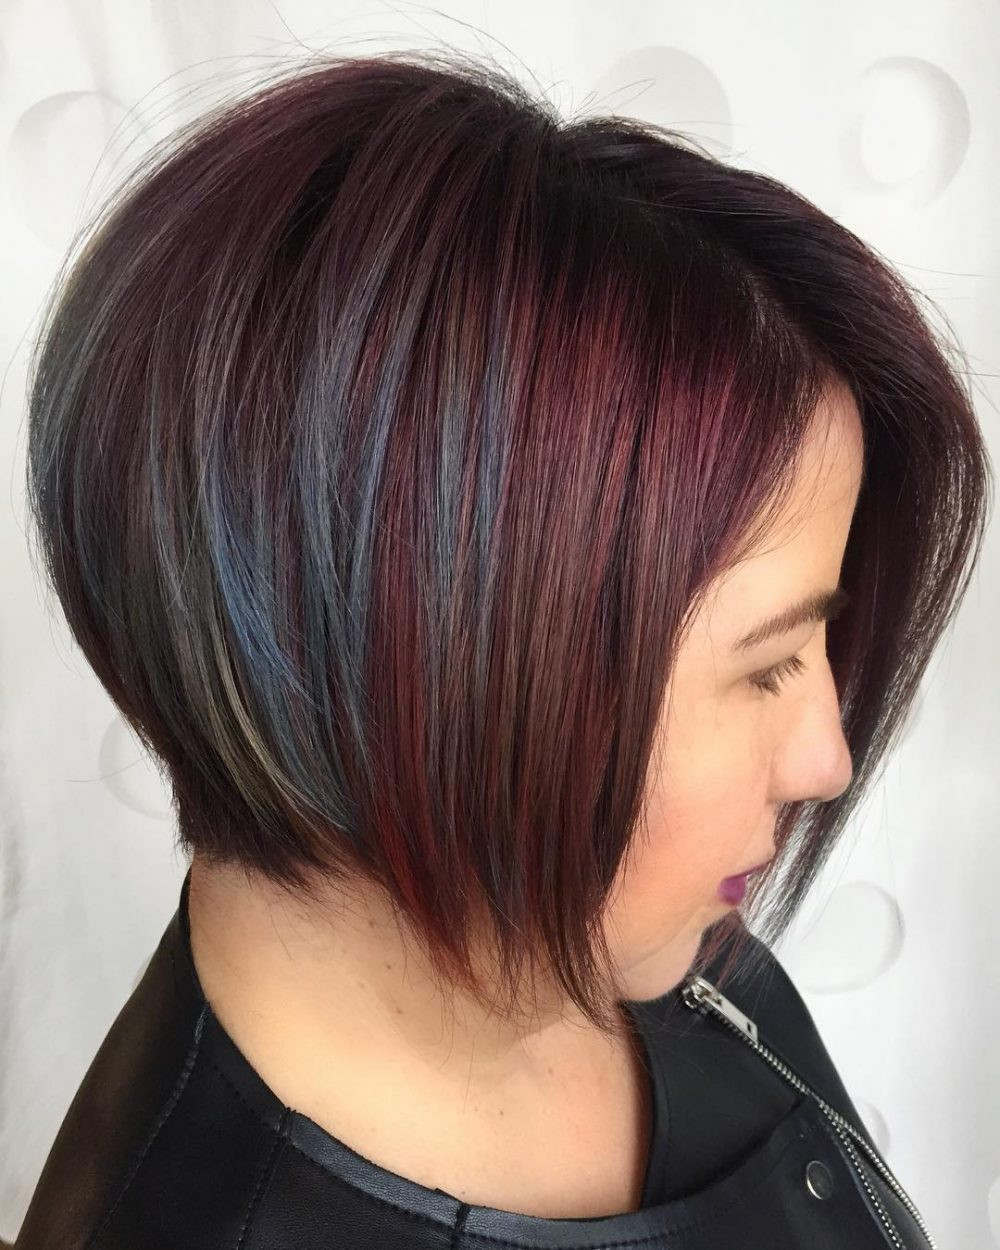 Best ideas about Hairstyles For Short Thick Hair . Save or Pin Short Haircut Styles Thick Hair Best Short Hair Styles Now.